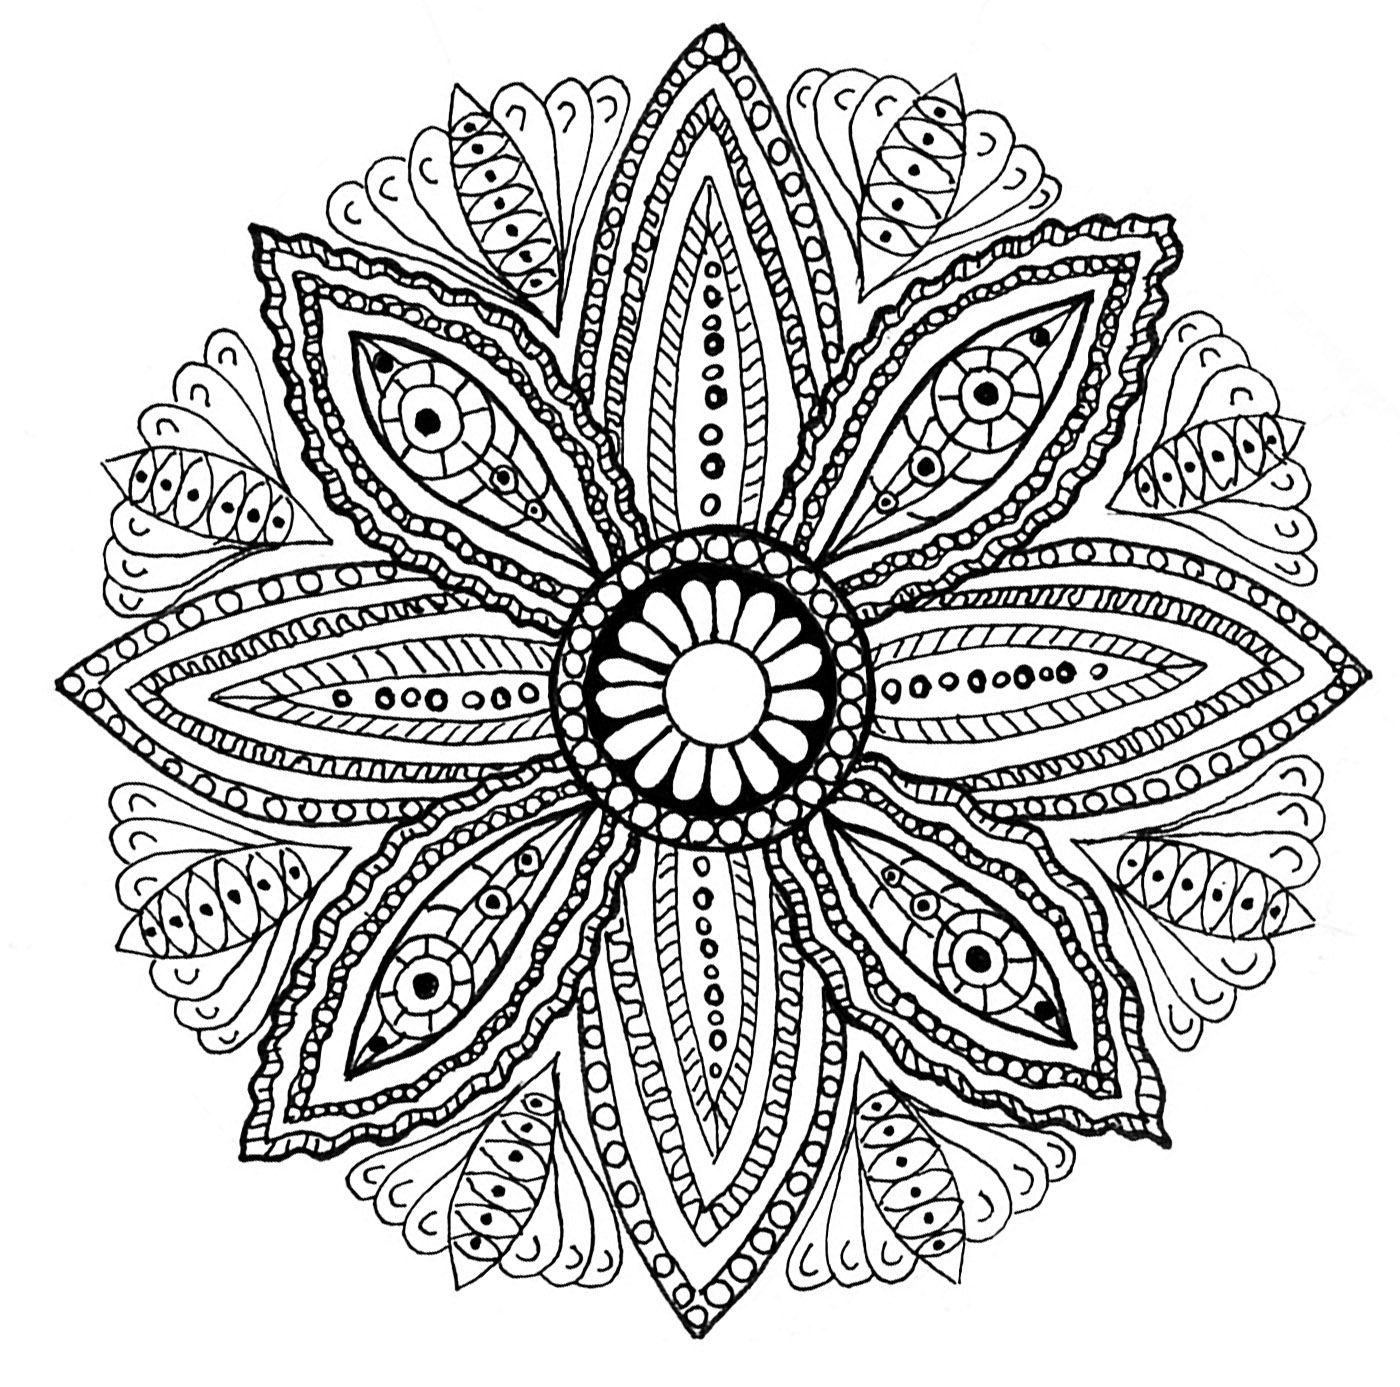 Mystical mandala coloring pages - Drawing Of A Mandala With Leaves From The Gallery Mandalas Coloring Pages